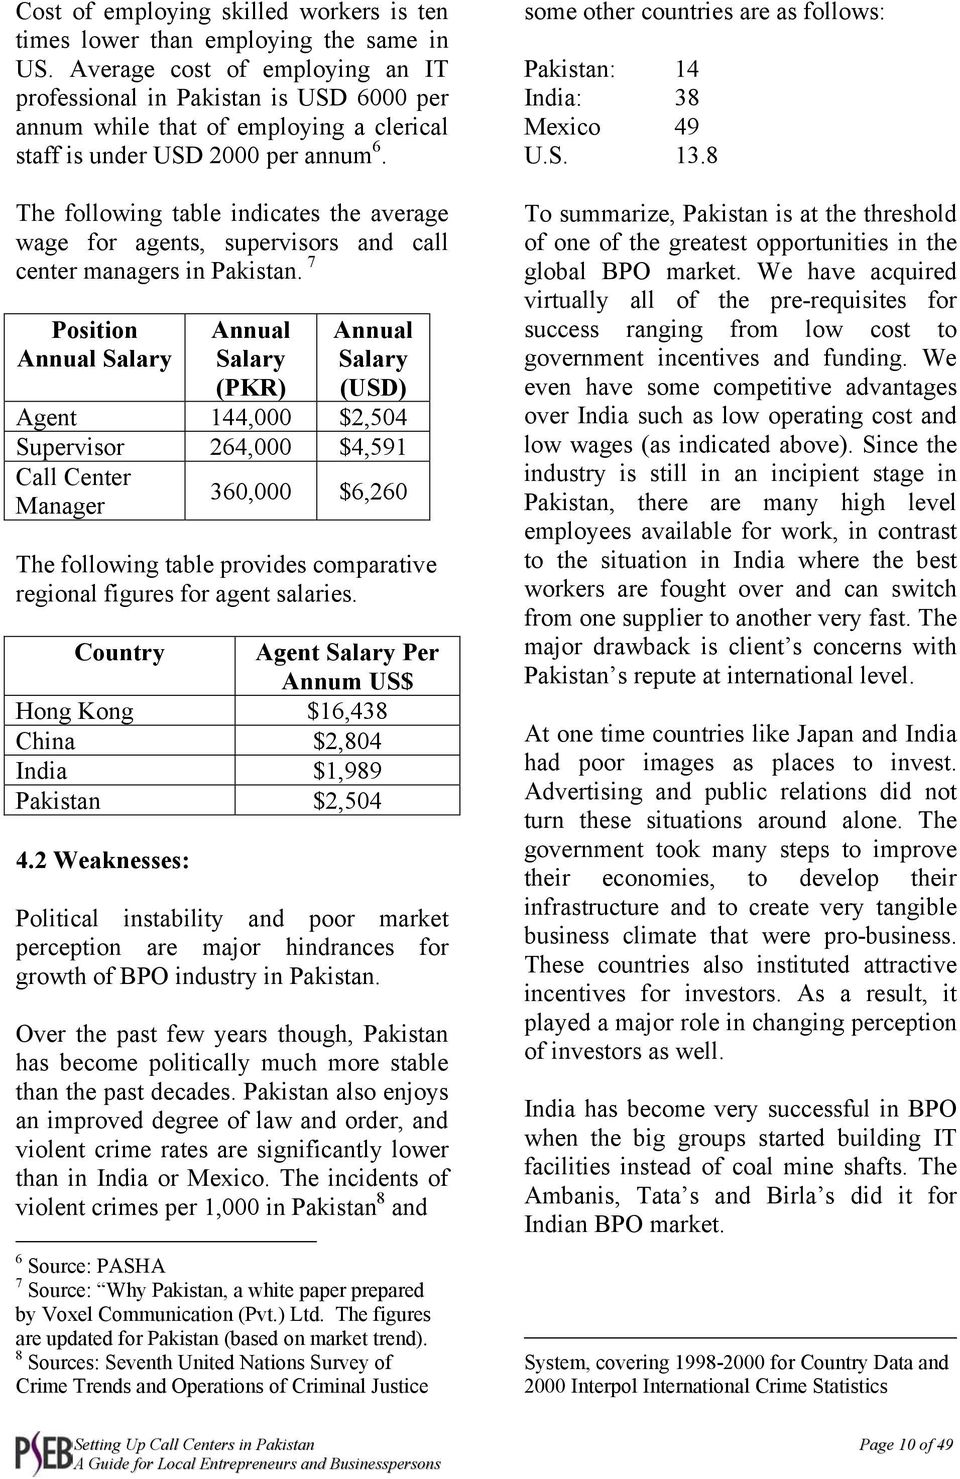 The following table indicates the average wage for agents, supervisors and call center managers in Pakistan.